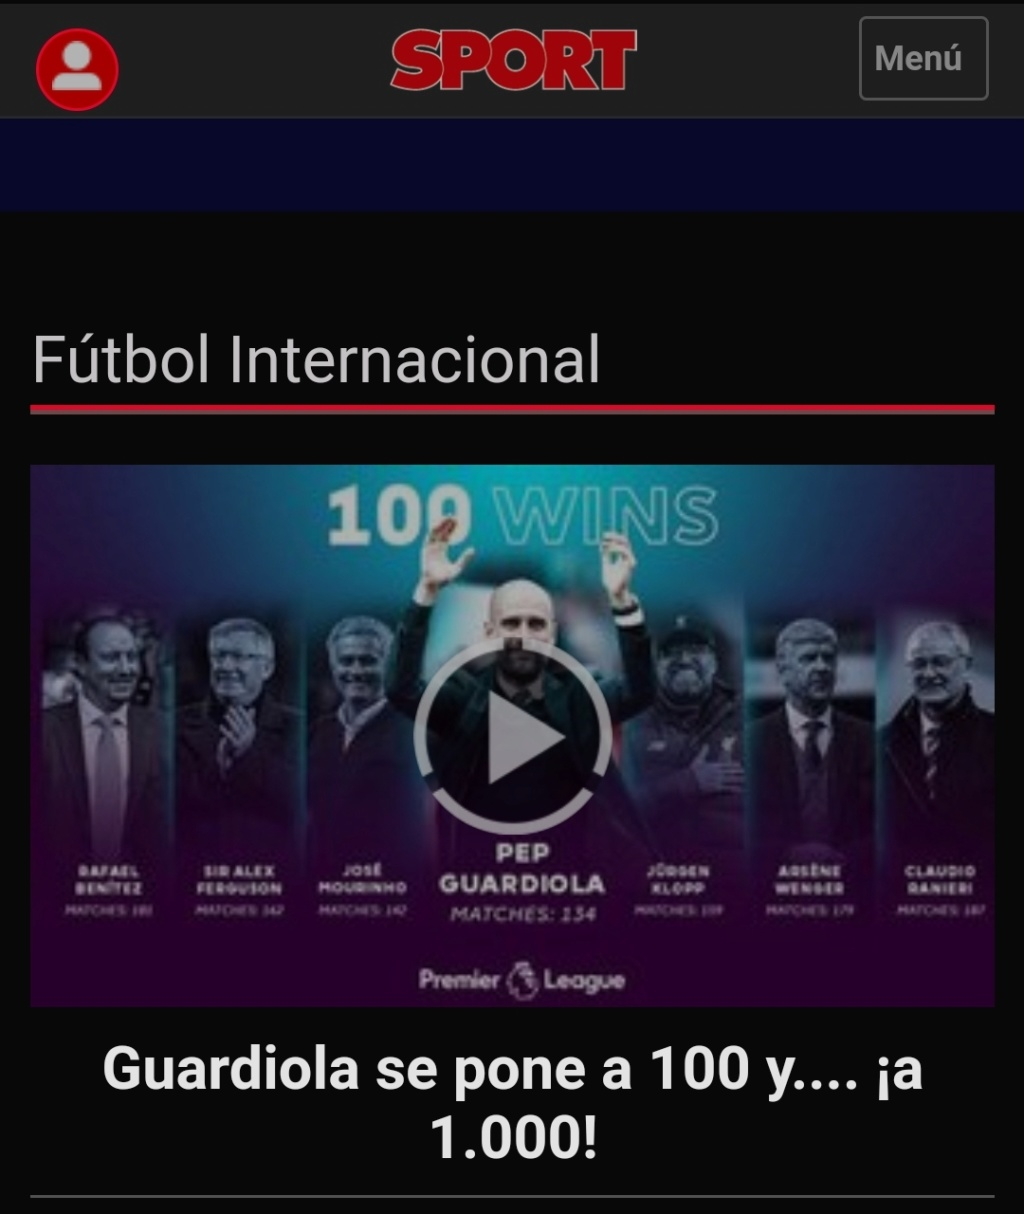 Pep Guardiola: Winter is Coming. A veintidó, veintidó, veintidó del líder de la Premier. La Premier Screen37